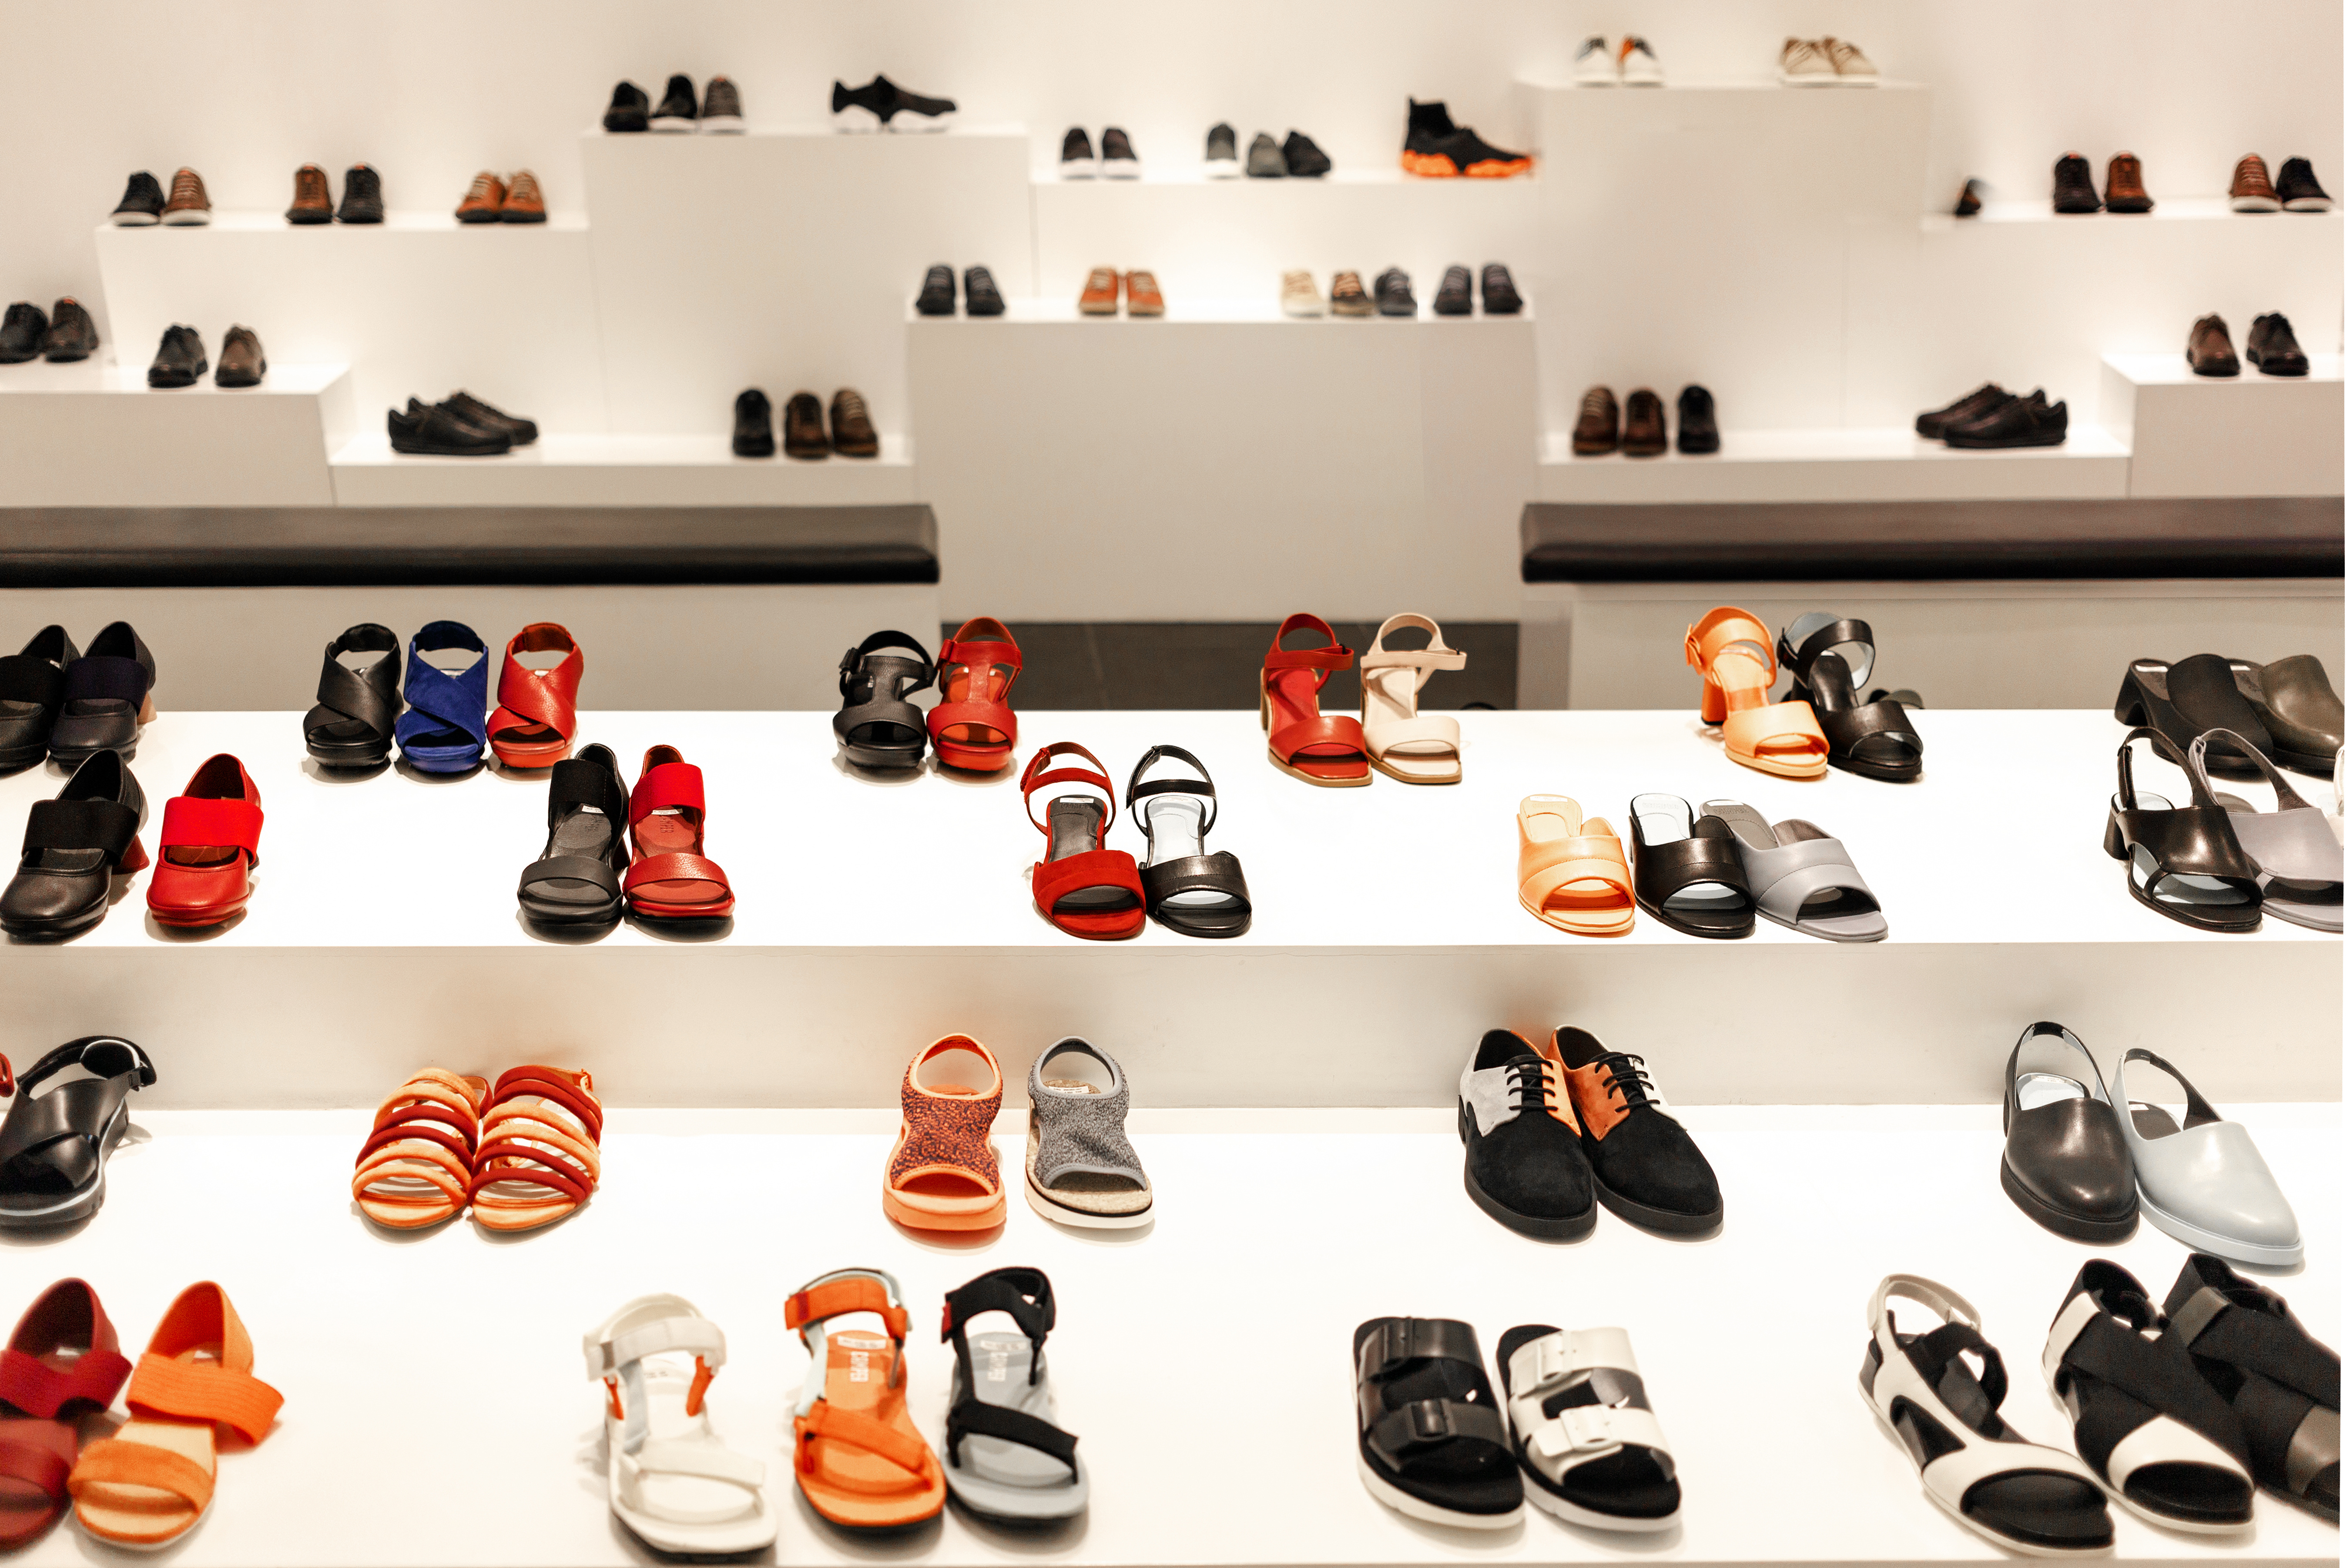 Four Things You Need to Know About Shoe Displays